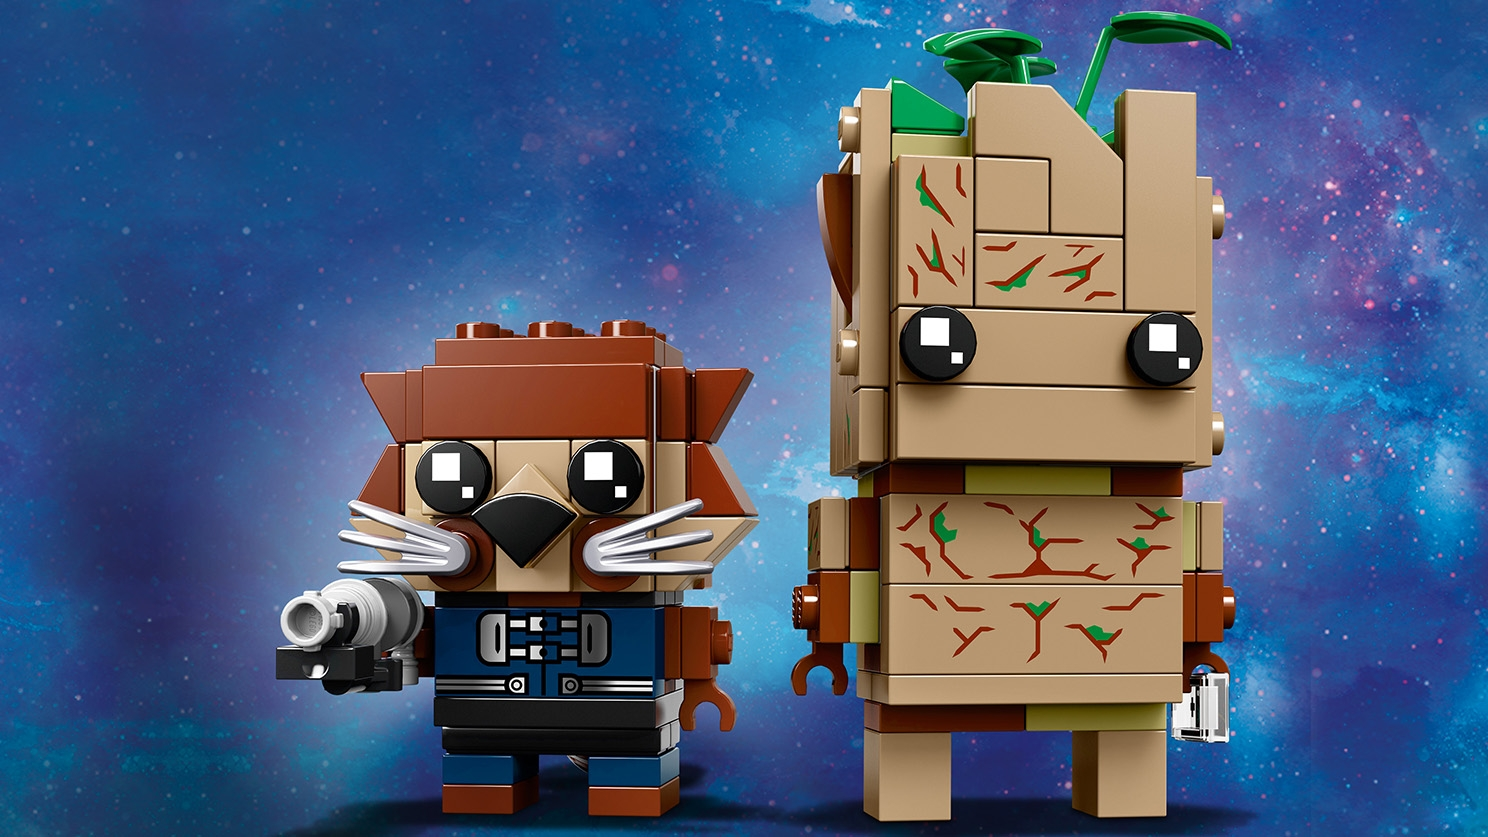 LEGO Brickheadz - 41626 Groot and Rocket - Build LEGO Brickheadz version of these two characters from the movie Avengers: Infinity War and display them on individual baseplates.